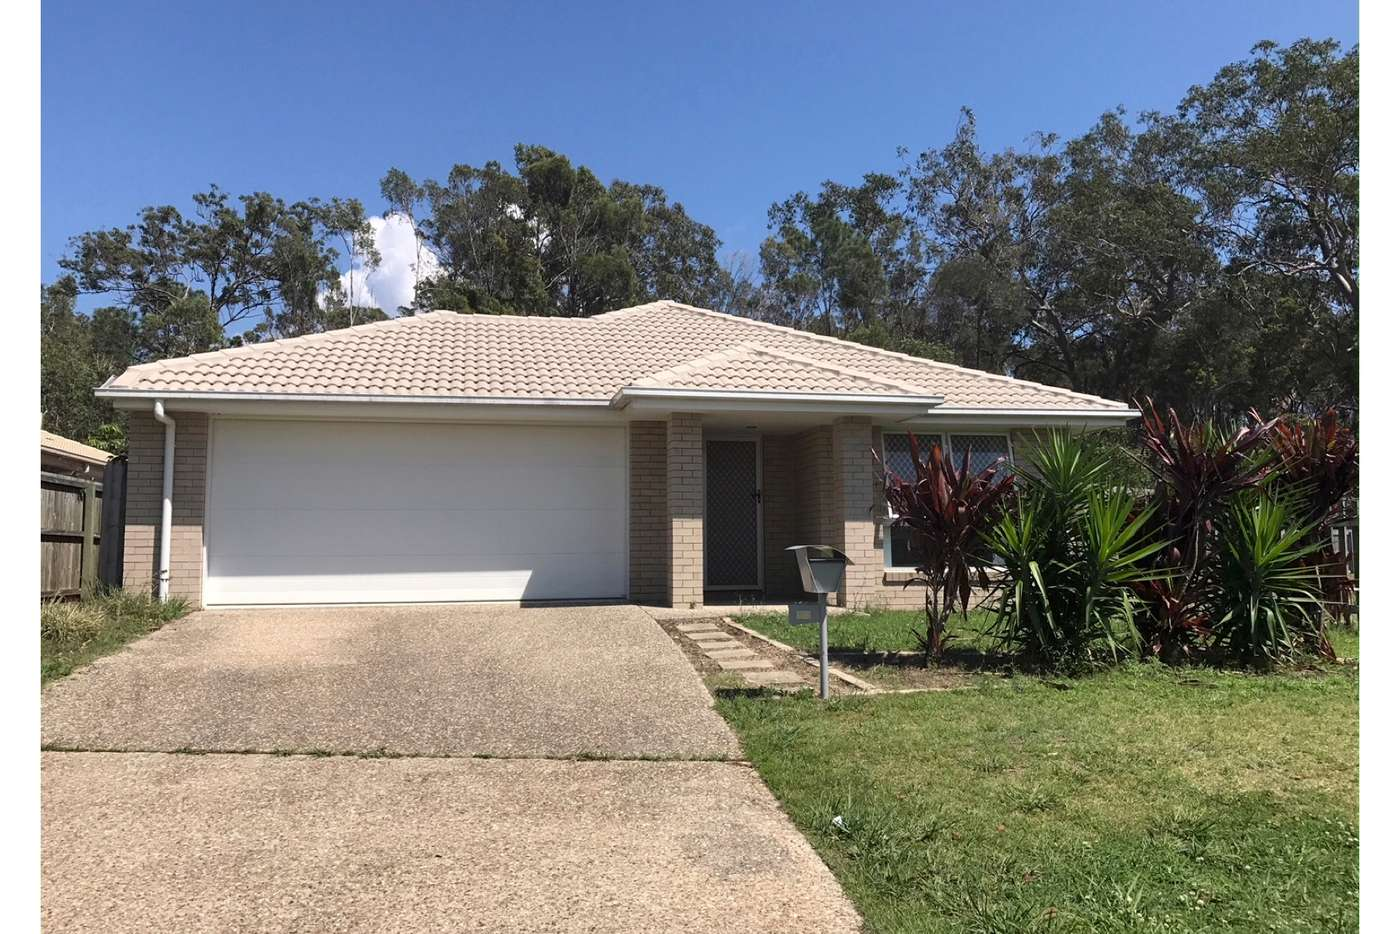 Main view of Homely house listing, 14 Wormwell Court, Caboolture QLD 4510